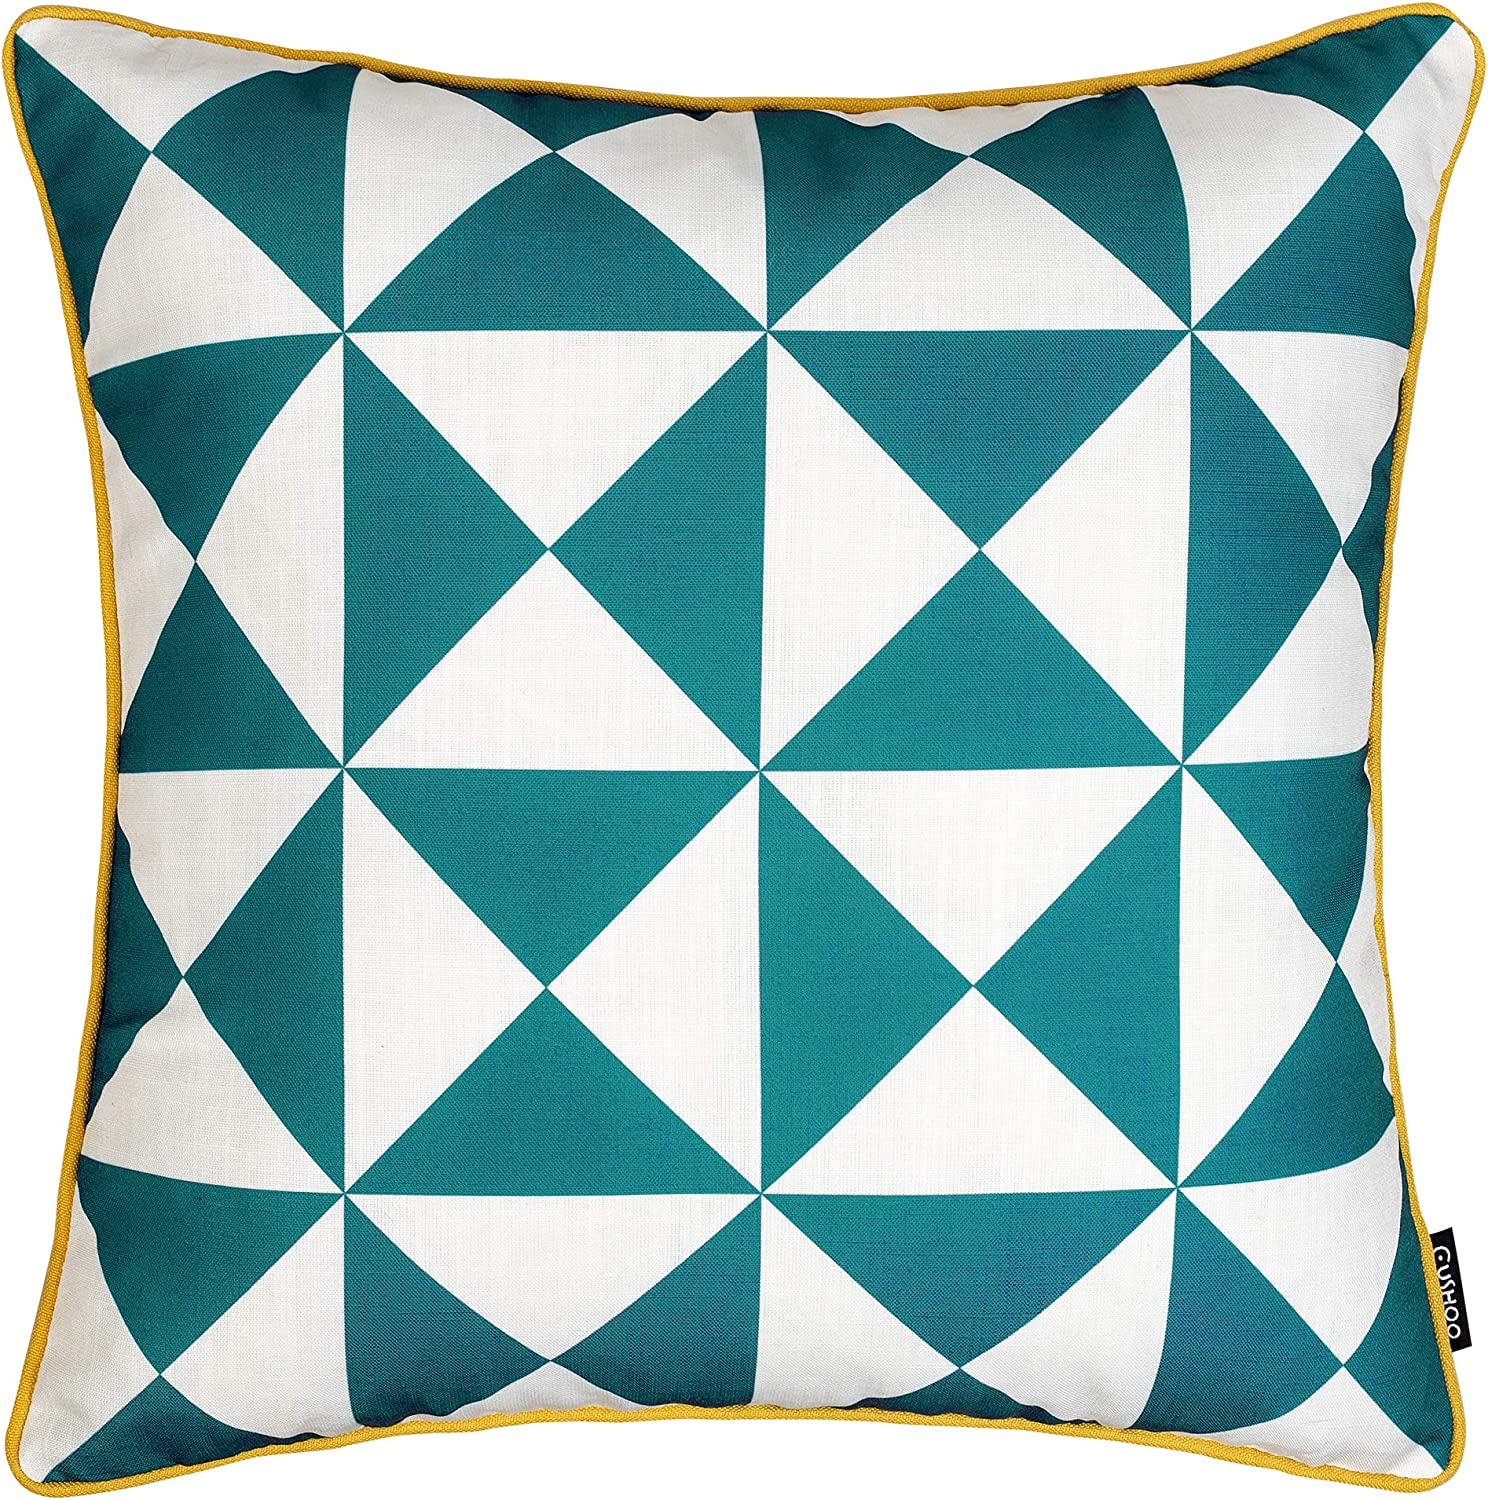 Cushoo Modern Geometric Cushion Cover In Teal Blue And White With Mustard Yellow Edge Piping Square Decorative Scatter Pillow Case For Sofa 45cm X 45cm 18in X 18in Amazon Co Uk